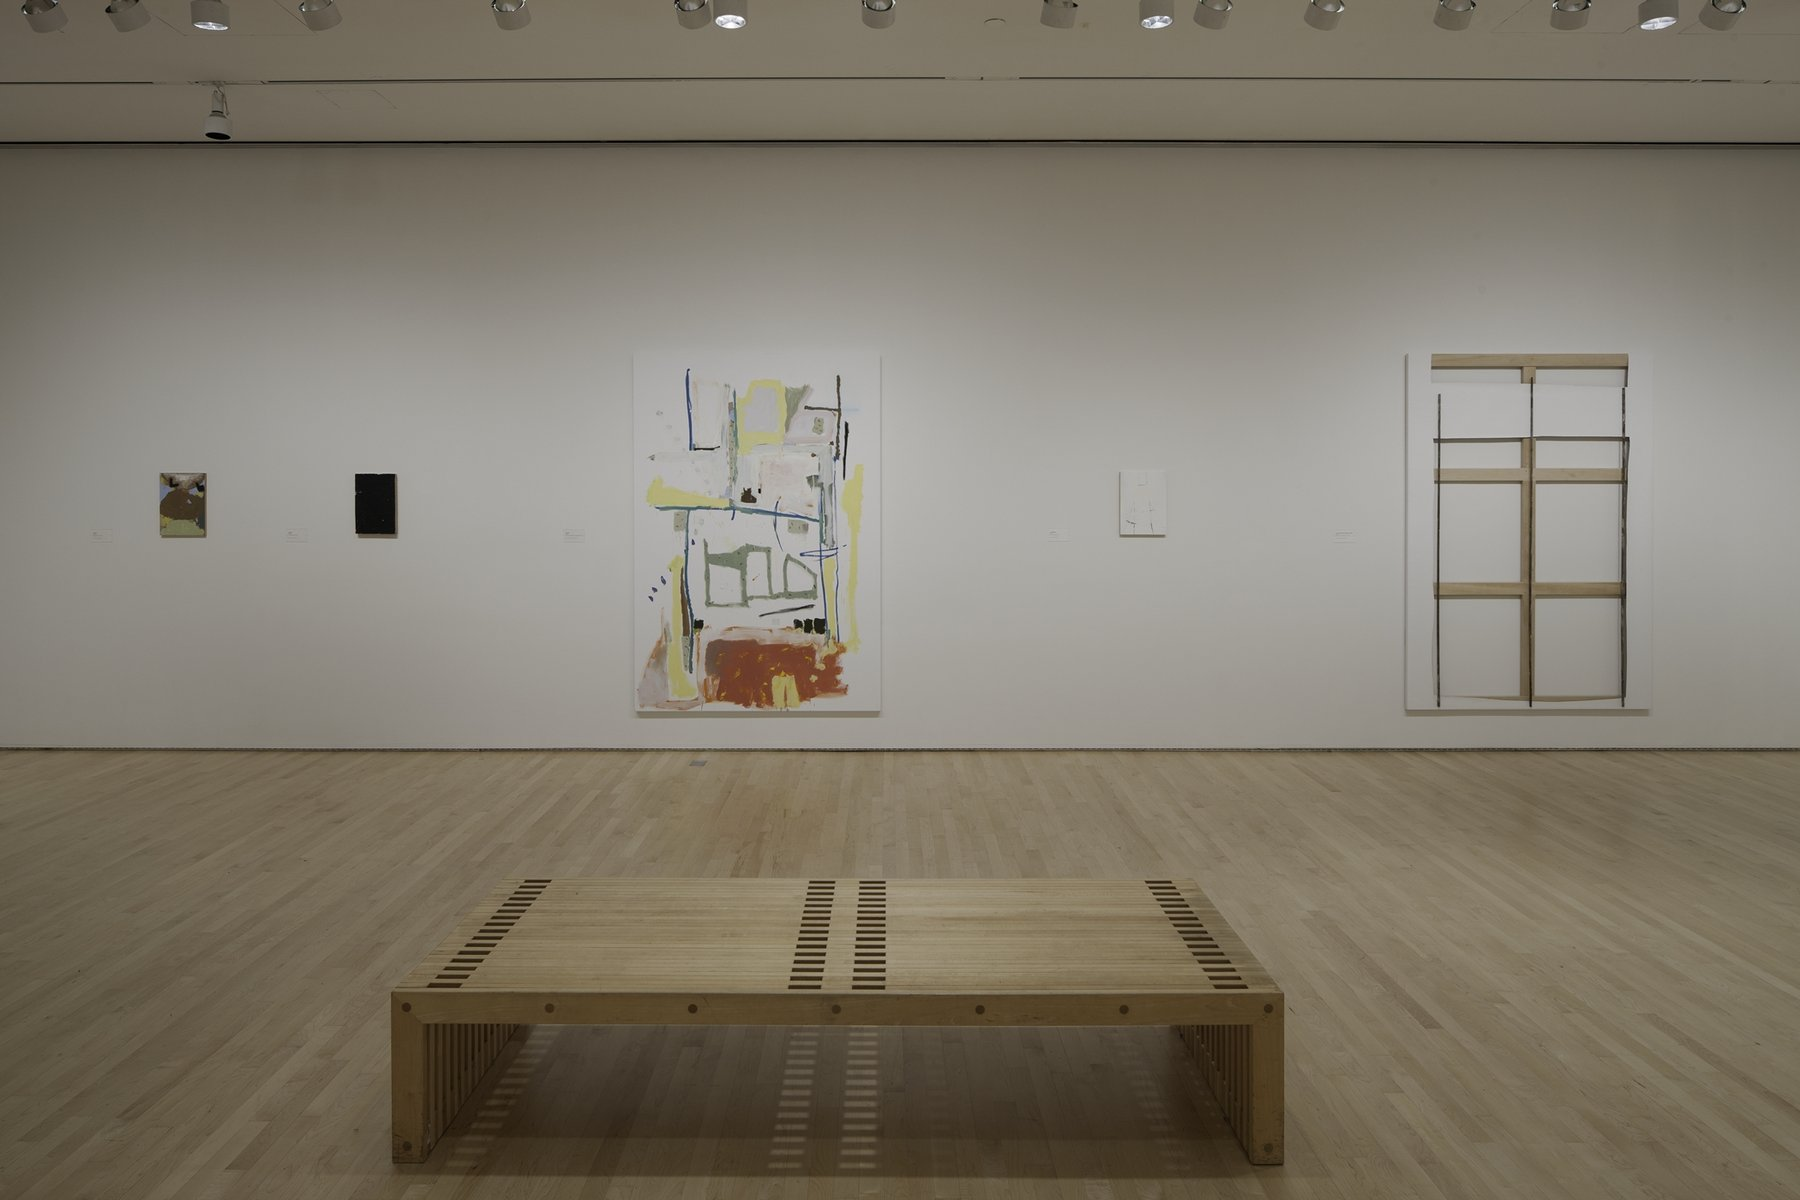 3.)	A white room with four pieces of art work by Richard Aldrich on the walls. There is a bench in the middle of the room.